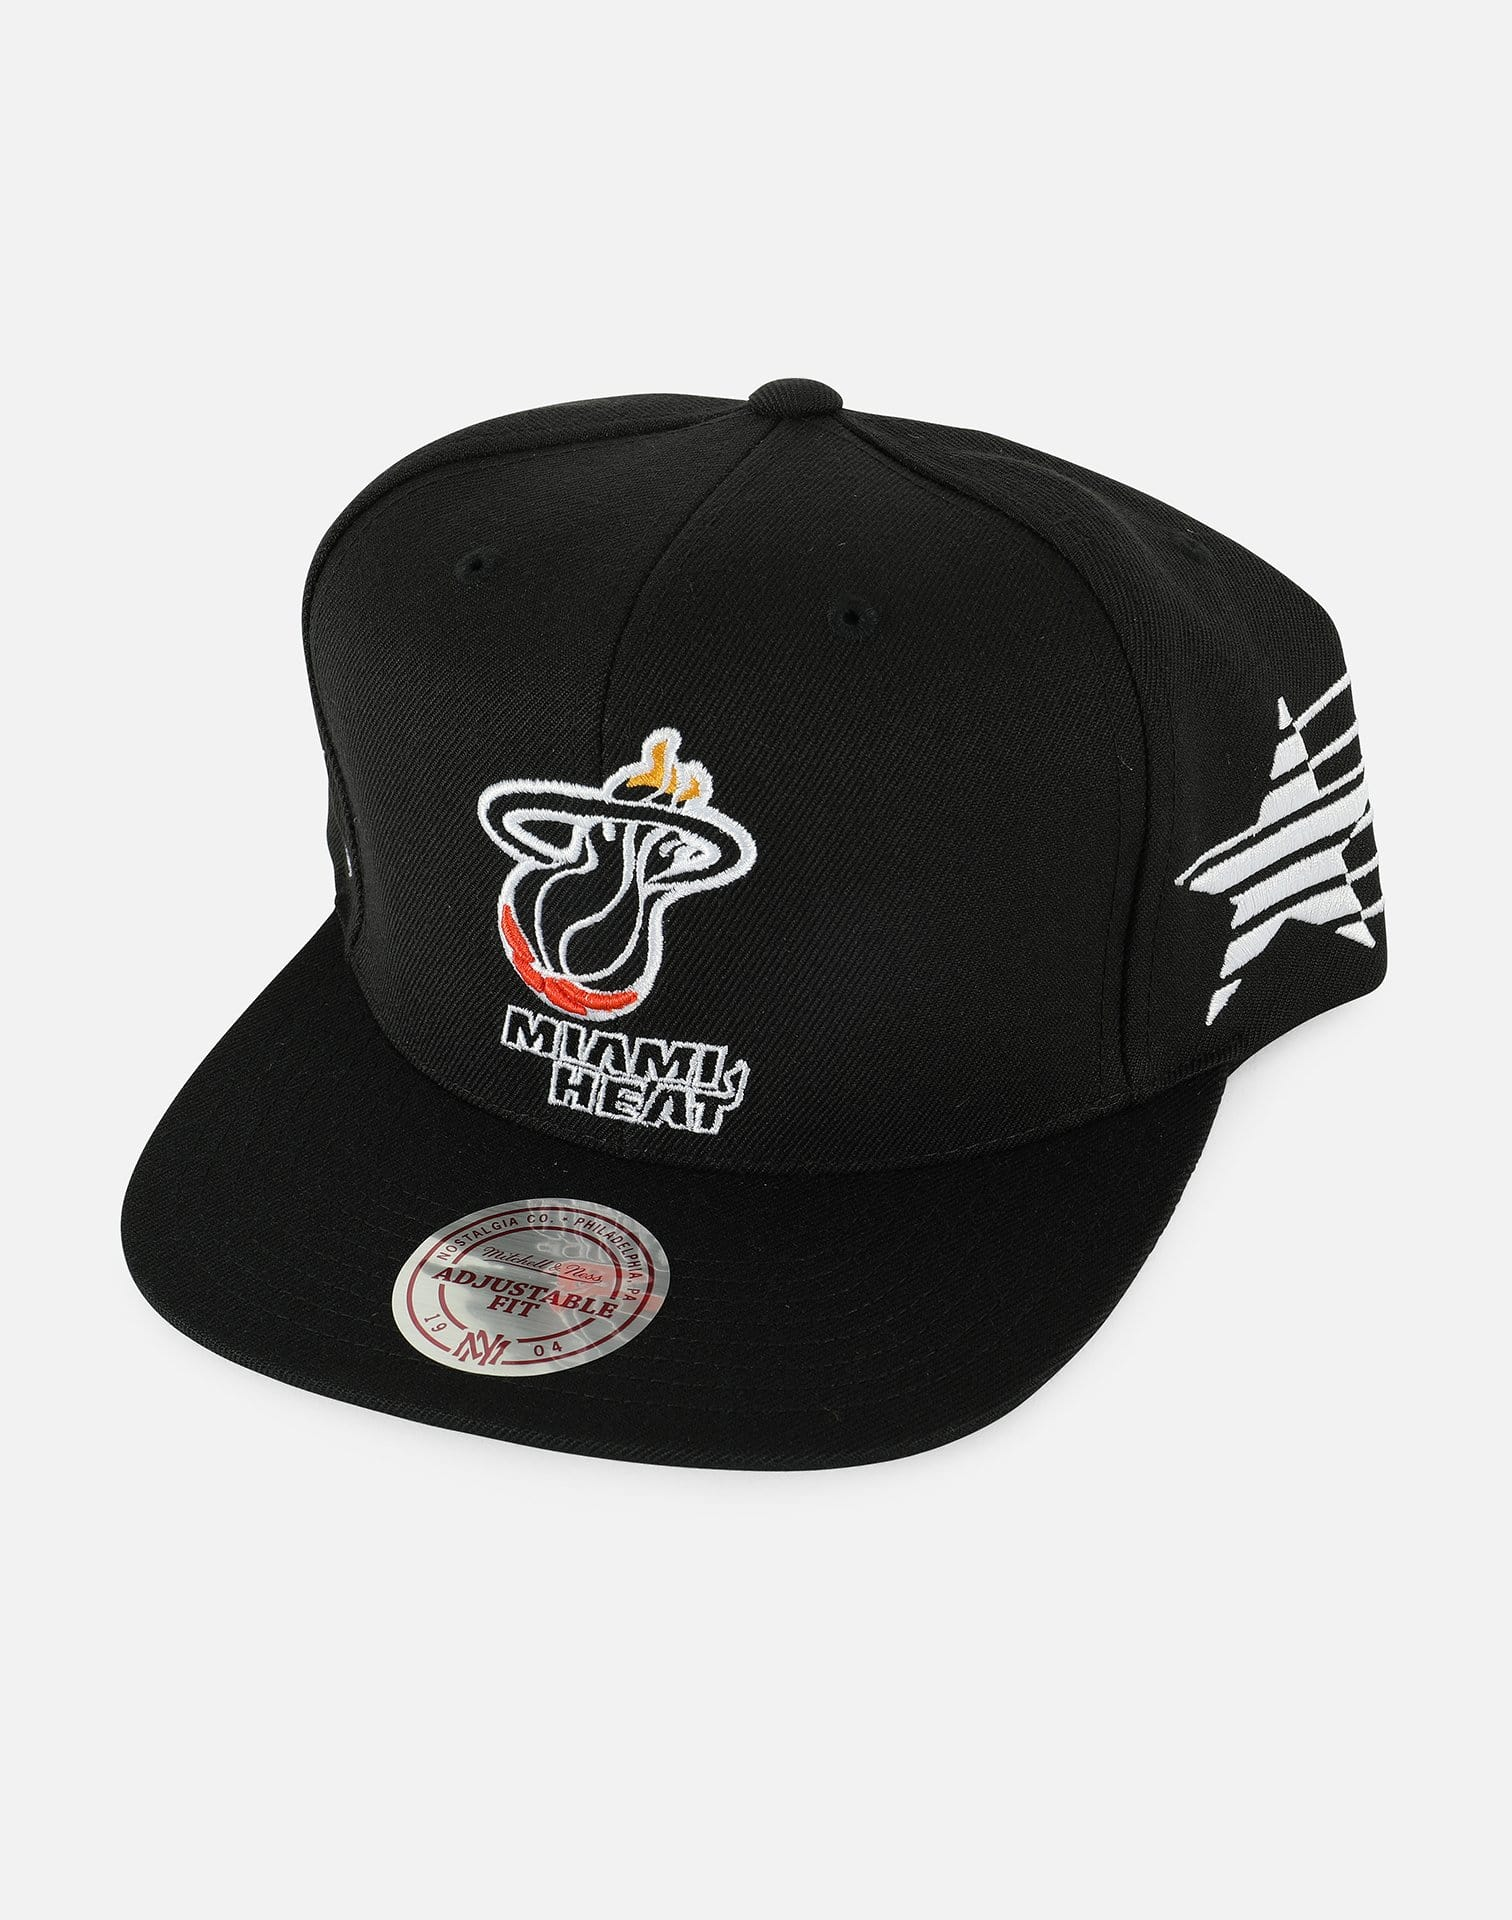 Mitchell & Ness NBA Miami Heat Racer Snapback Hat